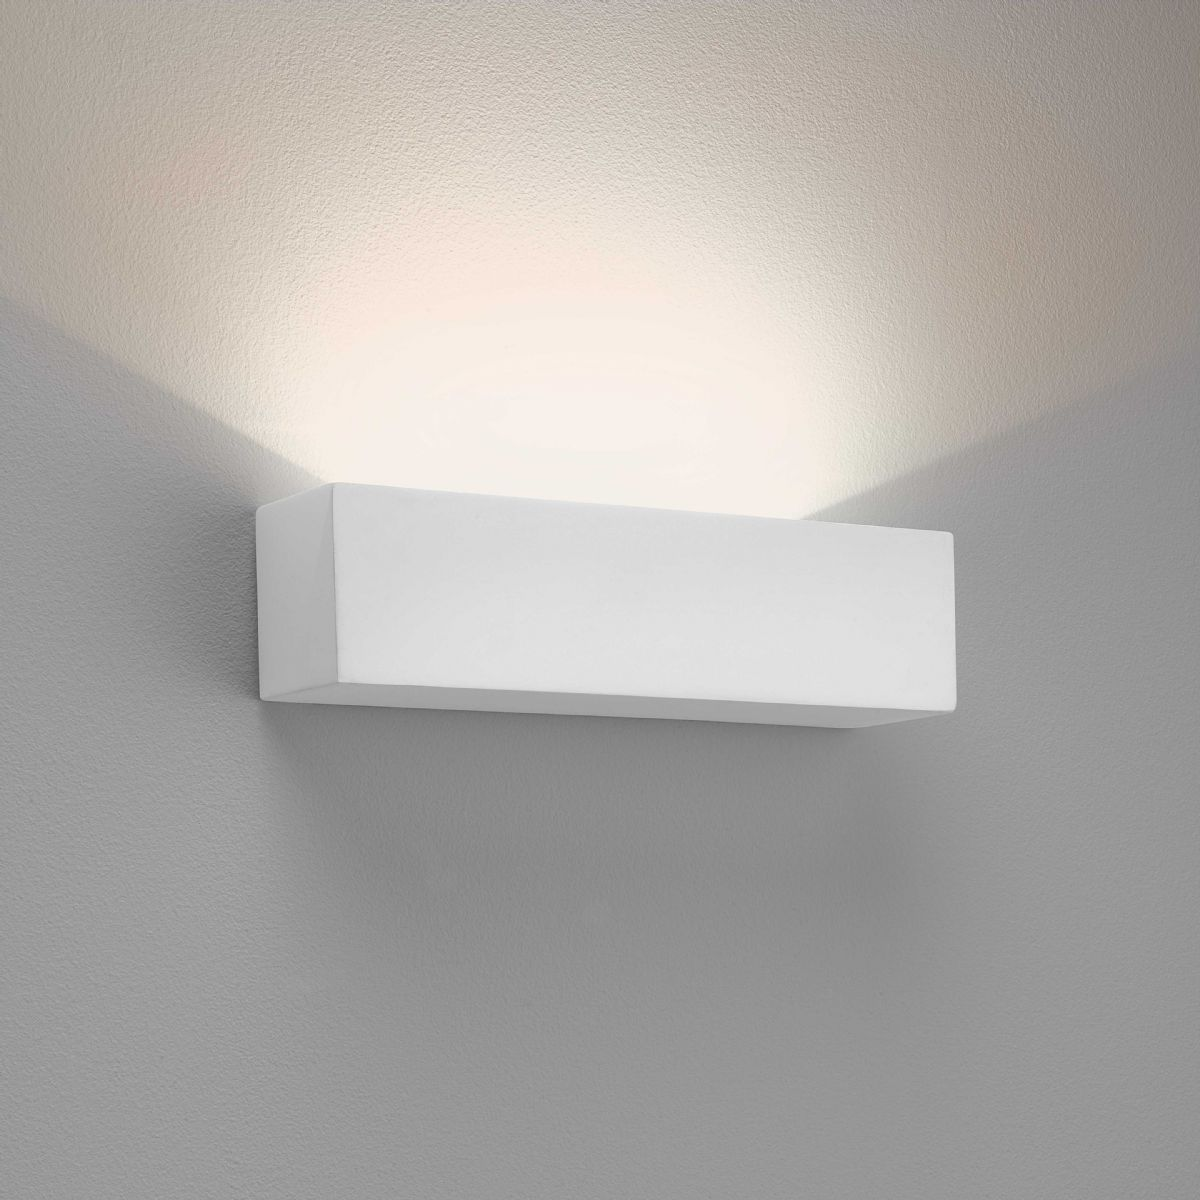 Astro Parma 250 LED wall light 0887 7599